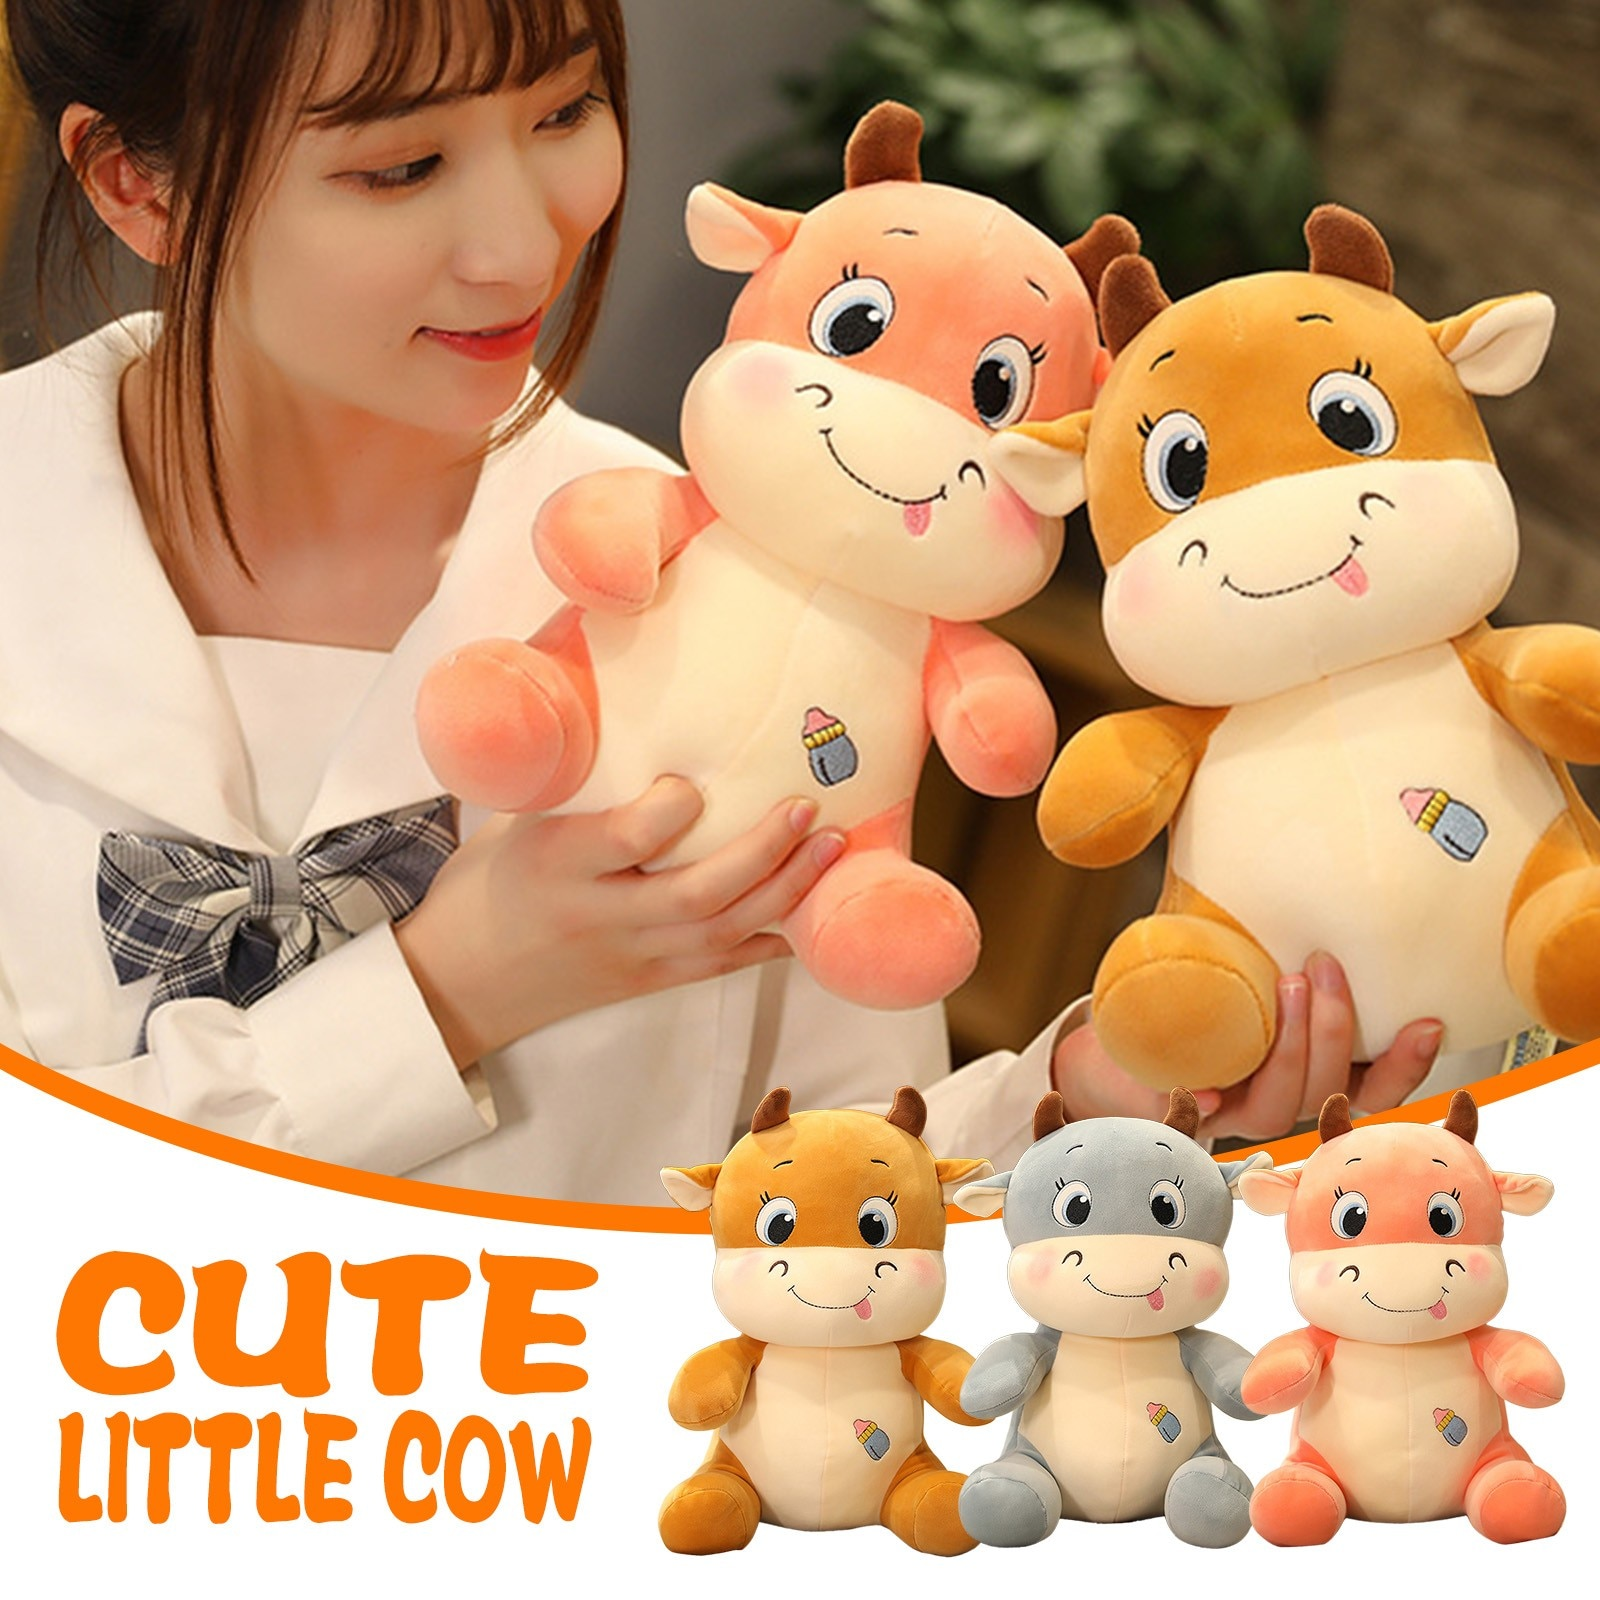 25cm free shipping kawaii cat plush pillow with zipper pp cotton biscuit shape plush animal doll toy children s christmas gift 25cm Cute And Warm Adorable Cow Pillow Sofa Backrest Calf Doll  Plush Toys For Children Kawaii Cartoon Animal Plush Toy Gift 5*